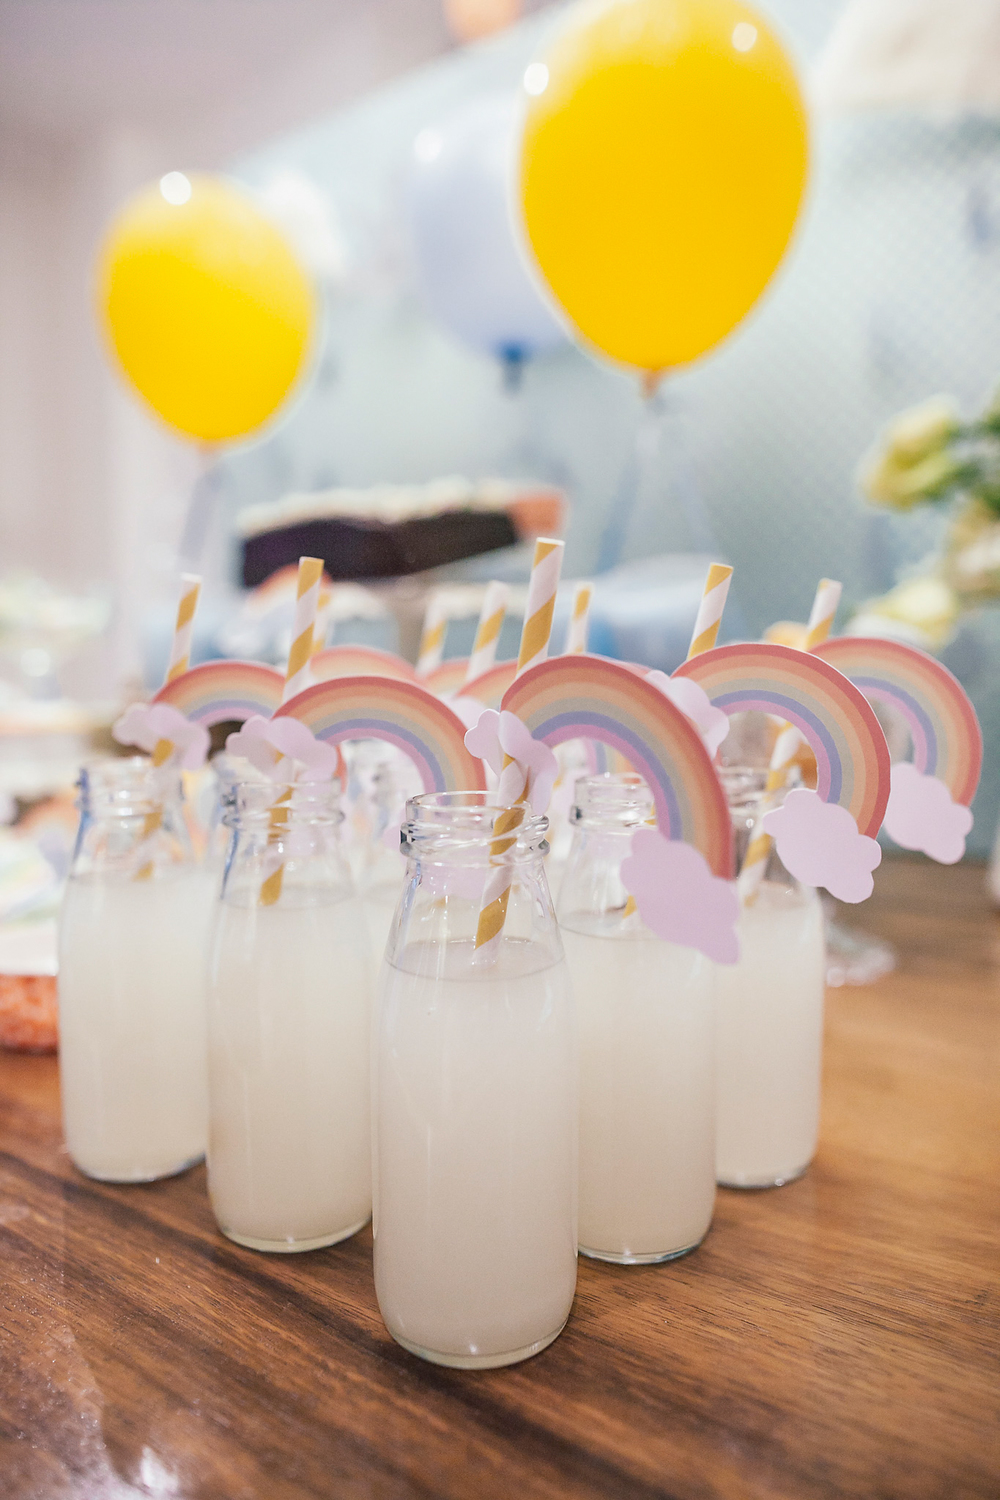 Lemonade jars with rainbow straws